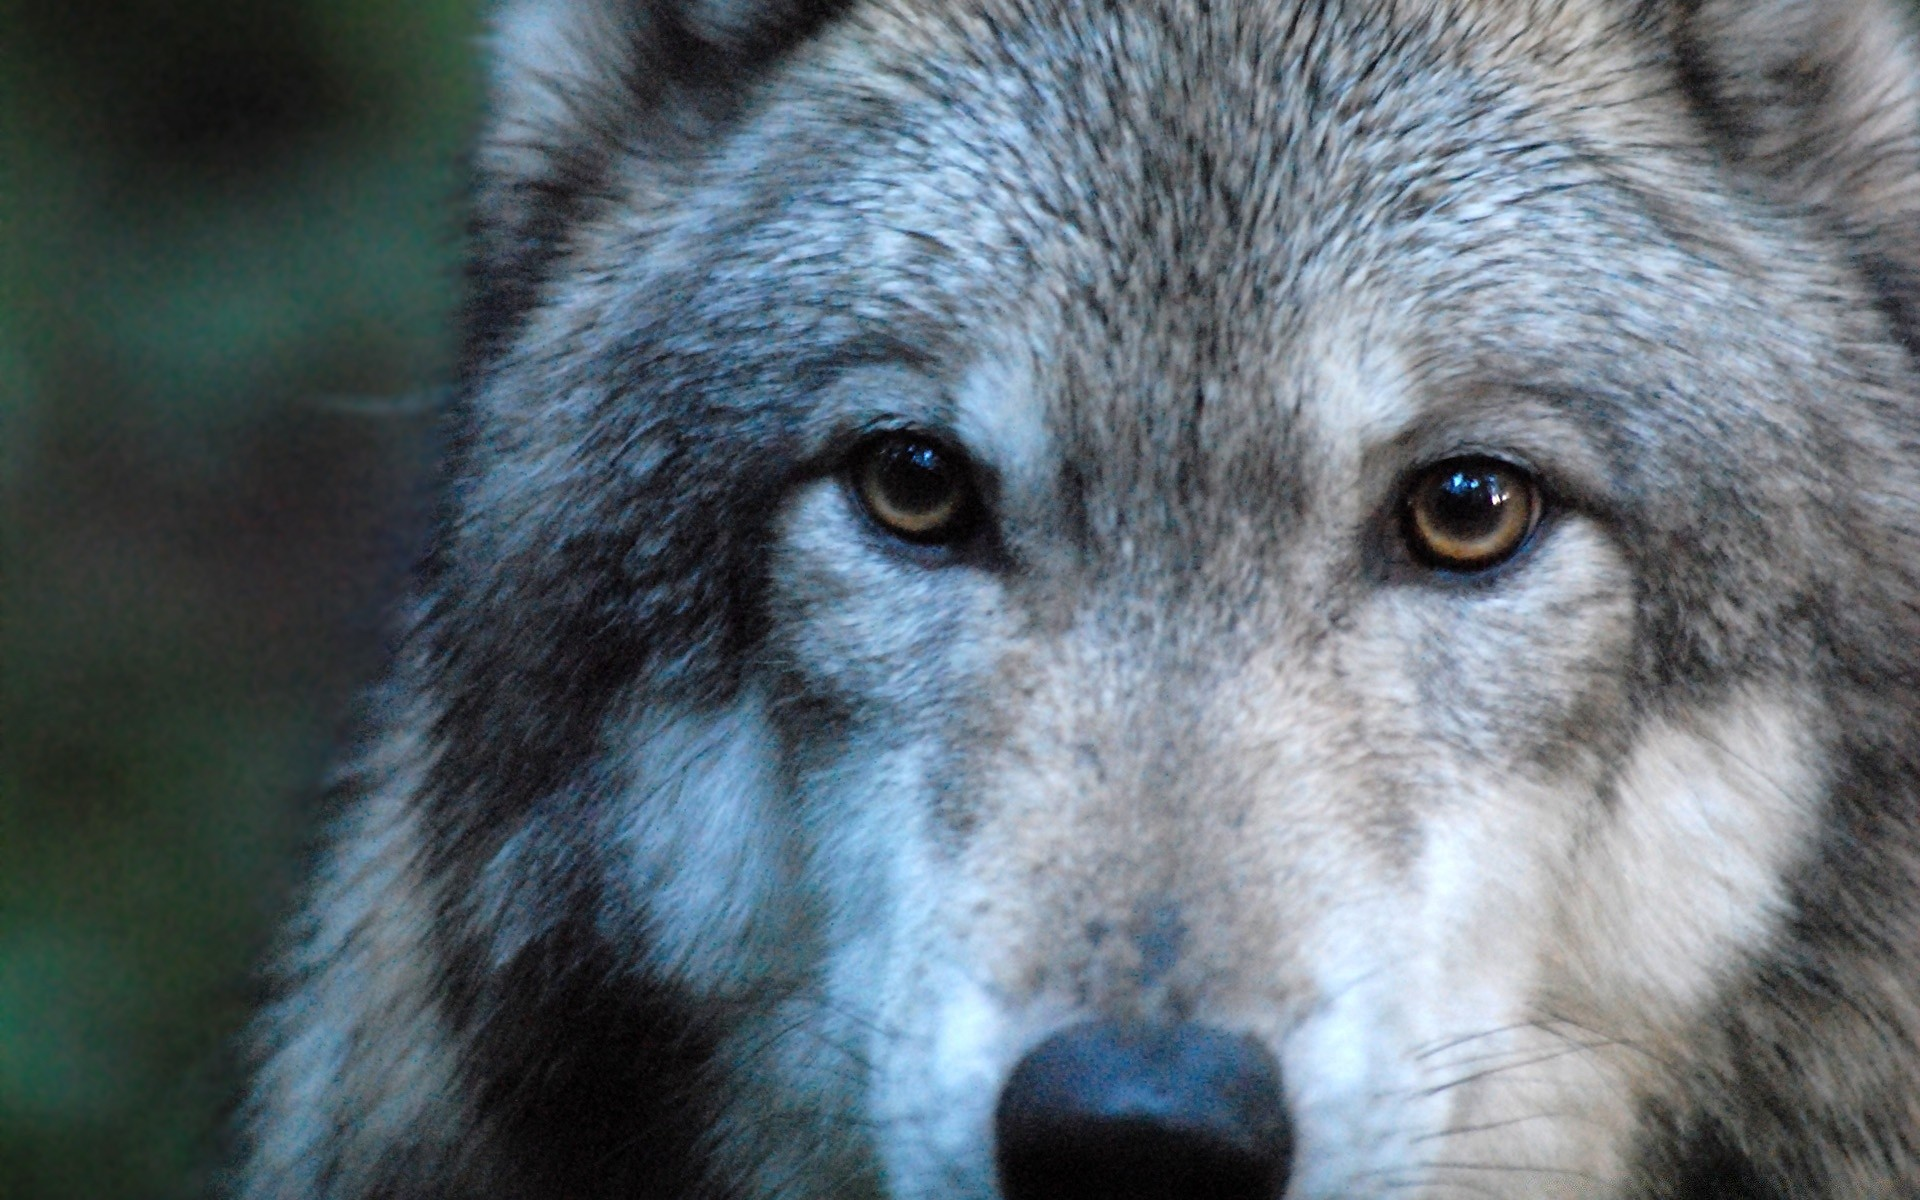 animals mammal wolf wildlife predator wild zoo animal portrait canine fur nature carnivore face dog head wood hunter grey canis